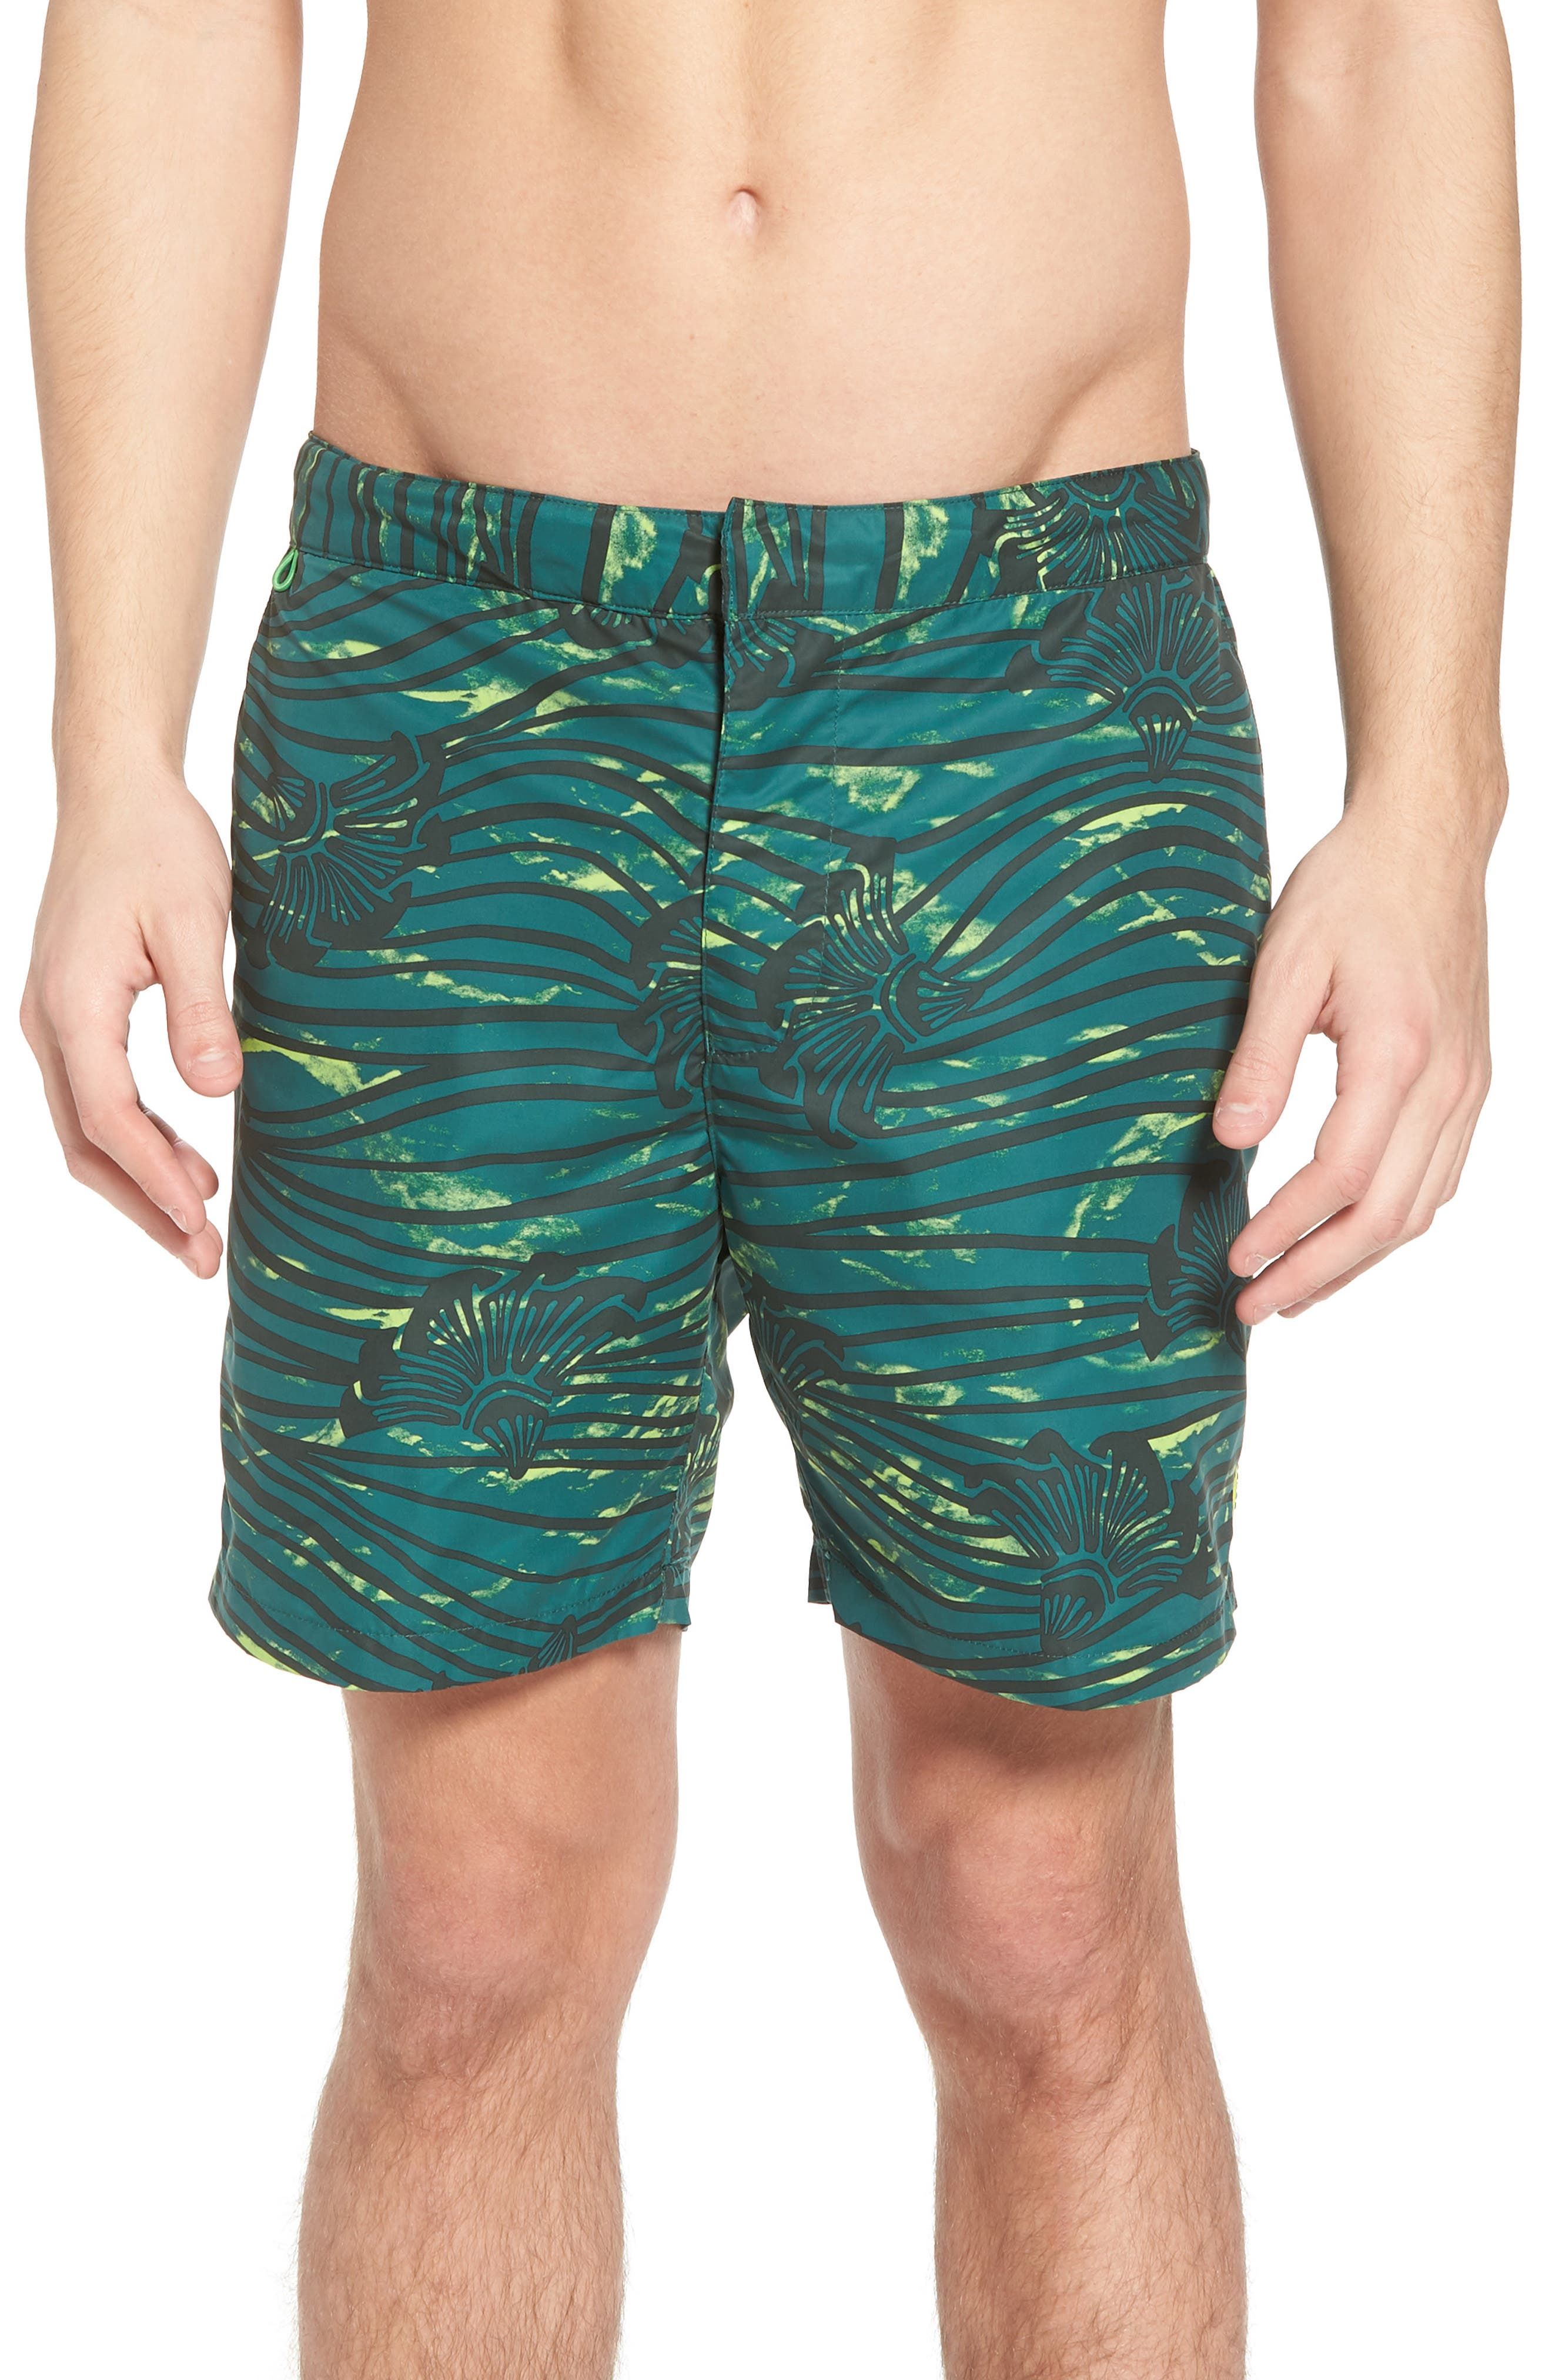 Patterned Board Shorts,                         Main,                         color, 440